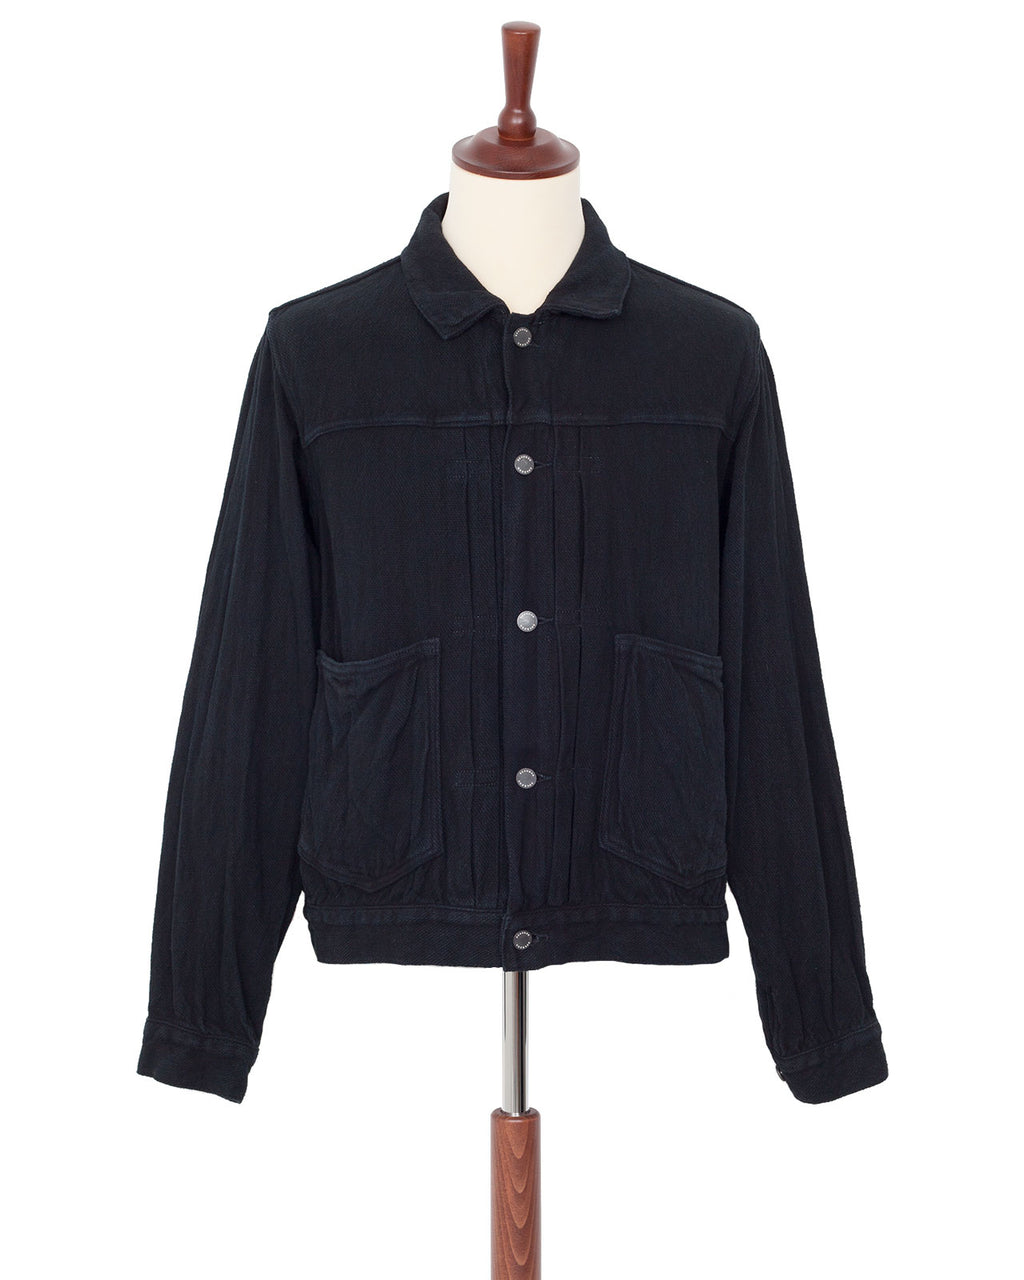 Beaugan Rousabout Jacket, Gunpowder